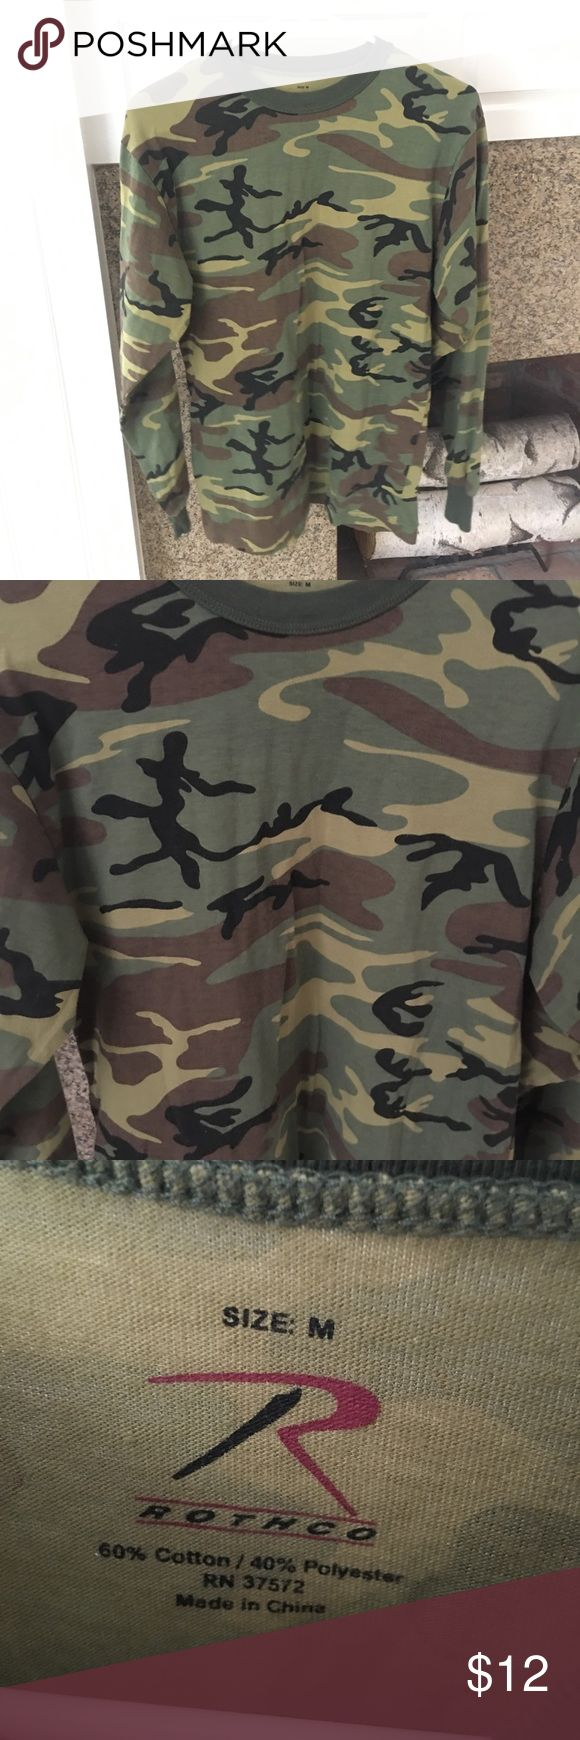 Long sleeved Camo top I think this is a men's top, but it could be for women too, I wore it a few times and it seemed unisex Rothco Shirts Tees - Long Sleeve